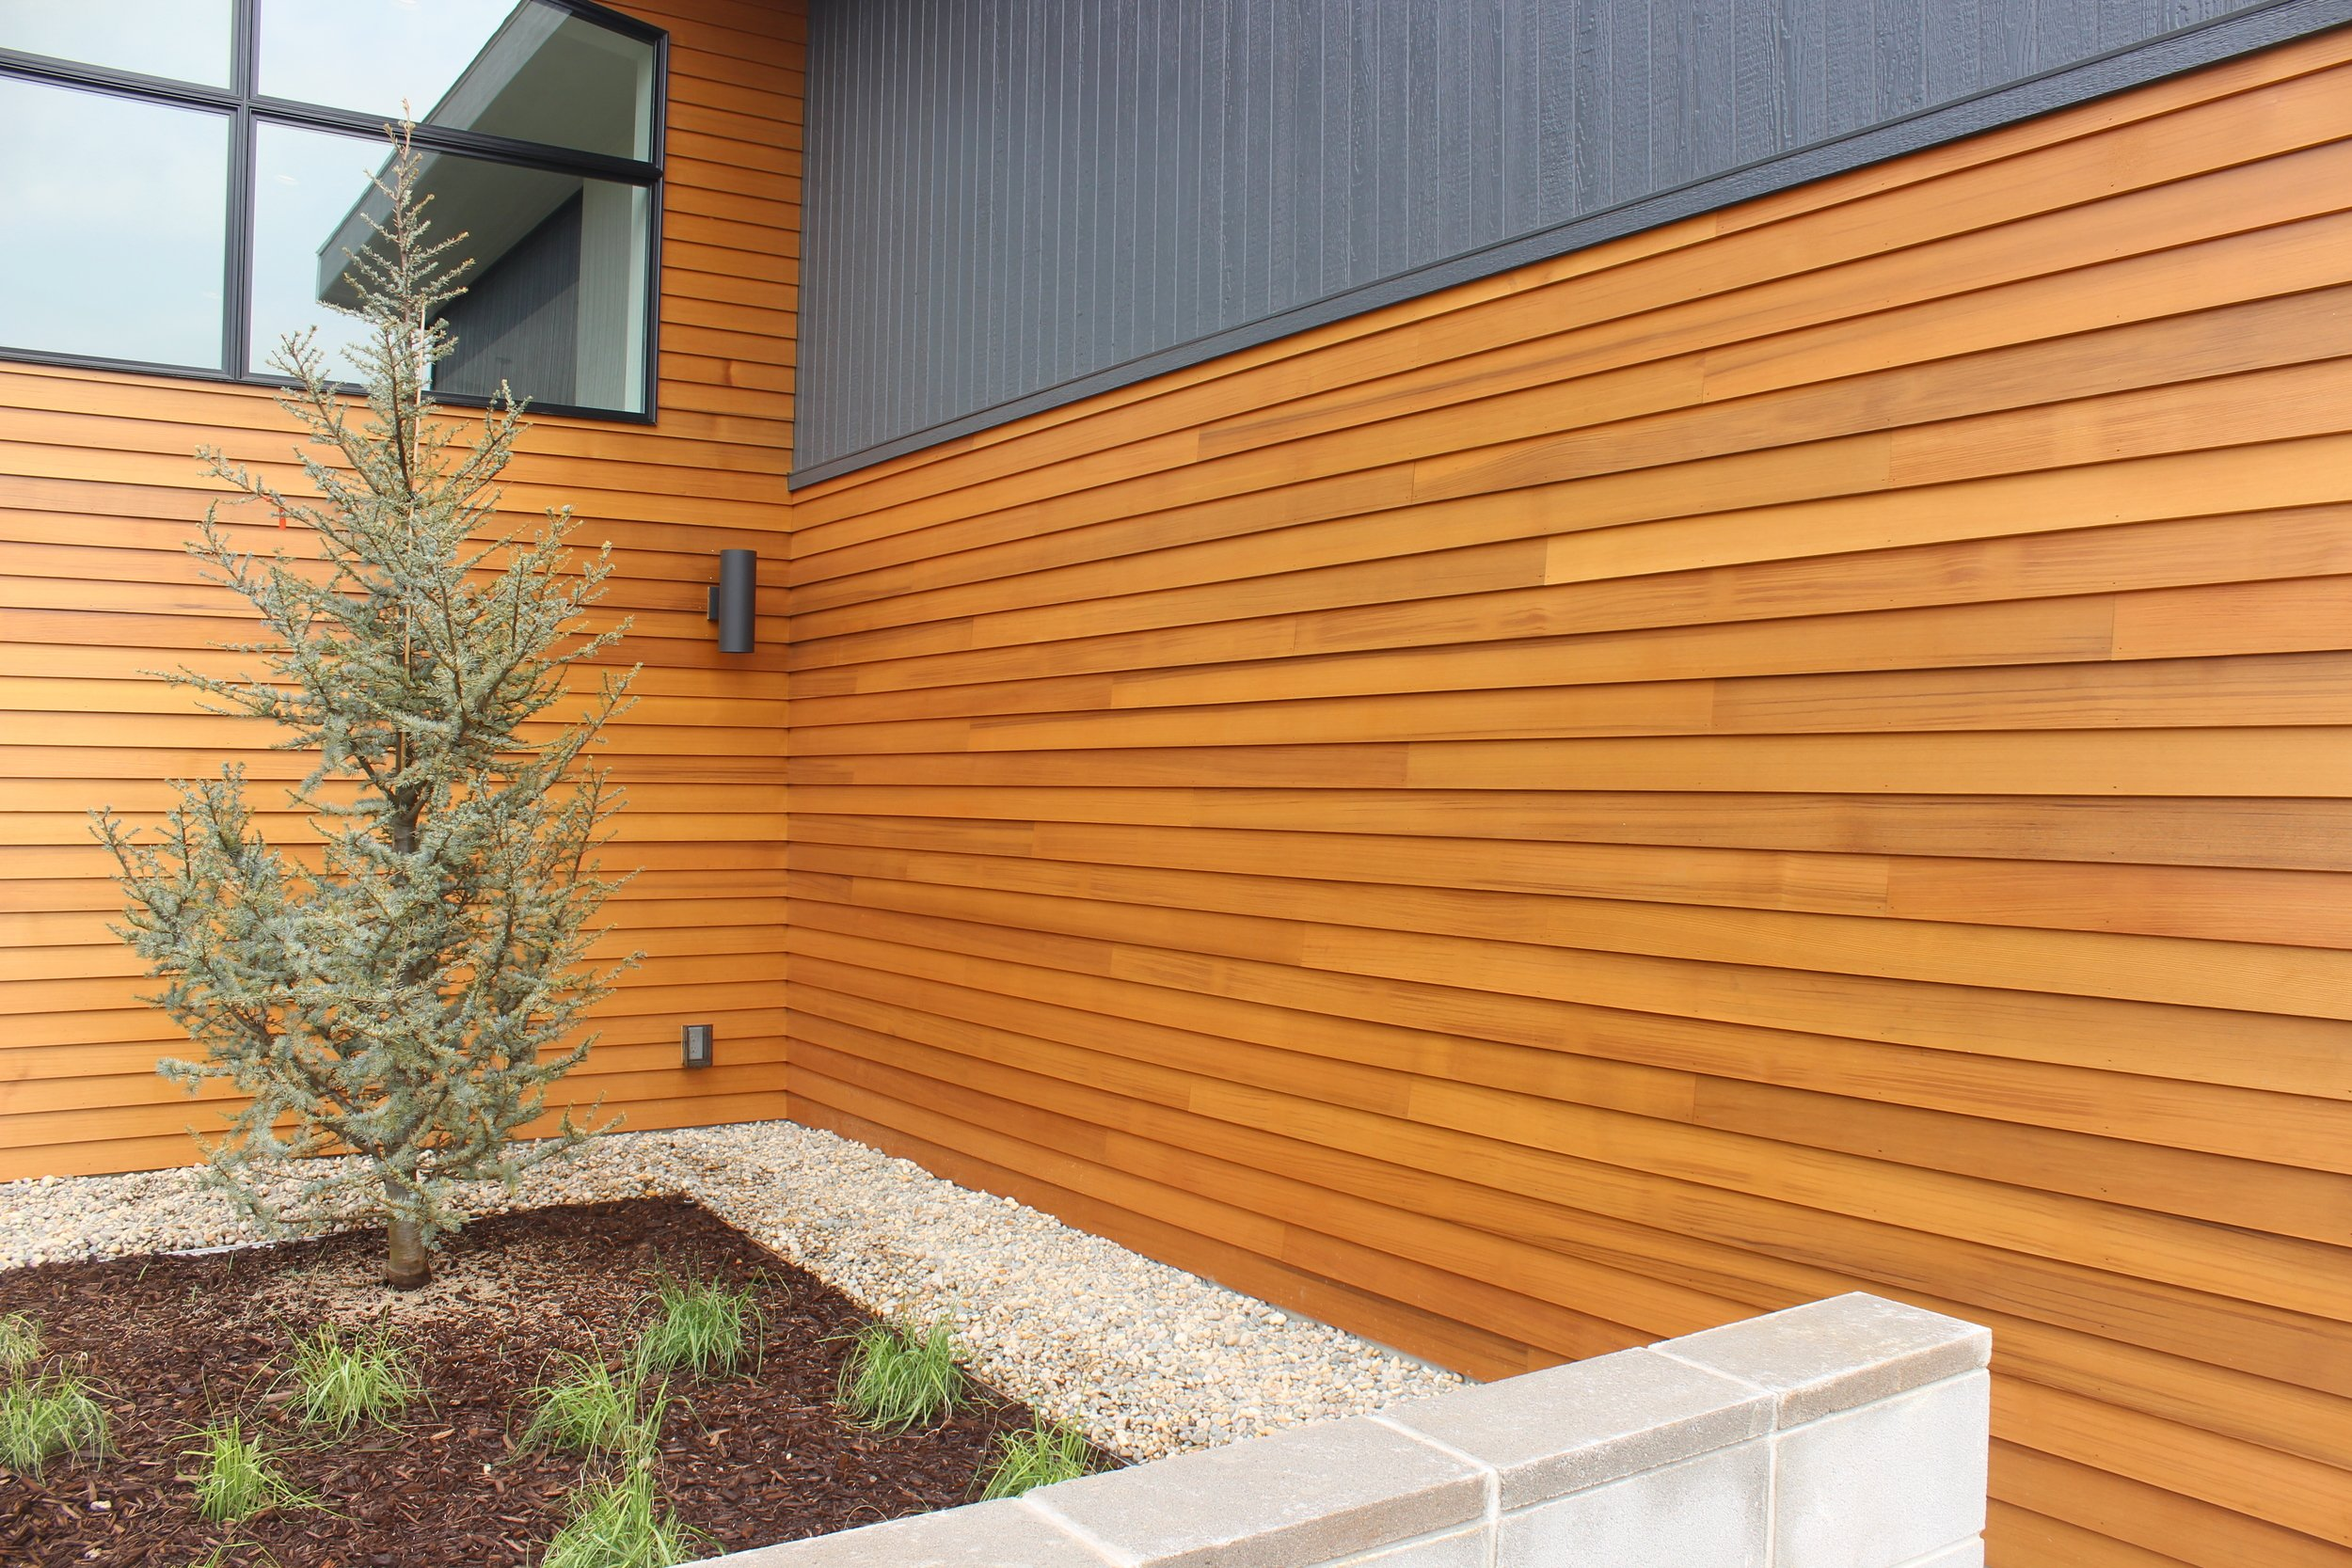 siding hamshaw lumber ace hardware On natural wood siding